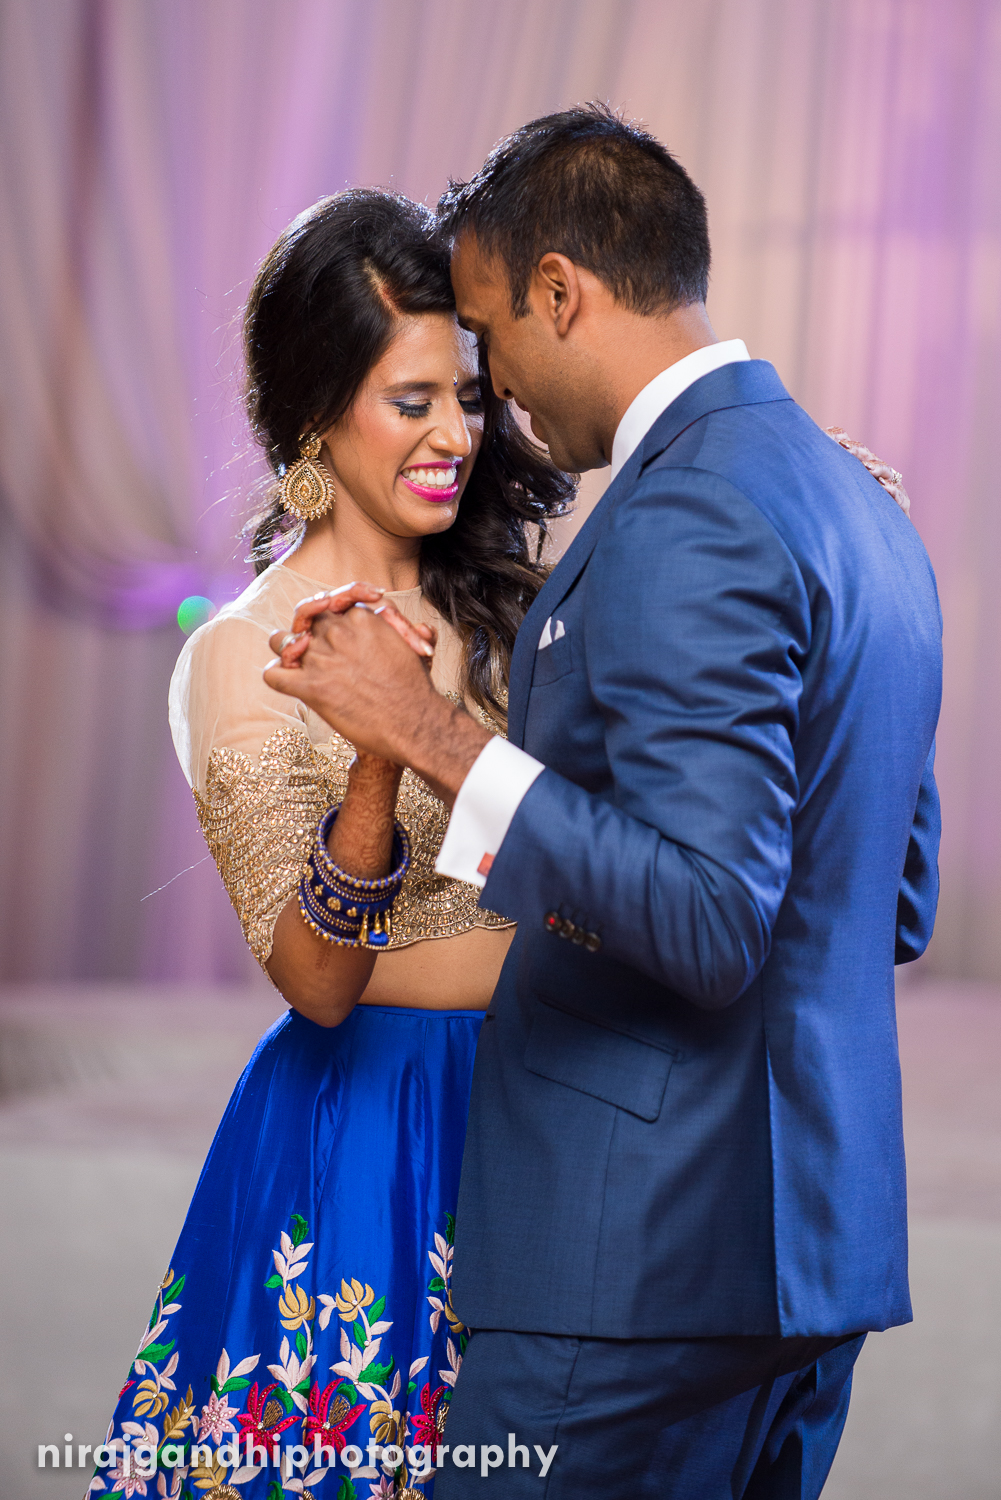 Sadhna + Rishi - Wedding-1315.jpg